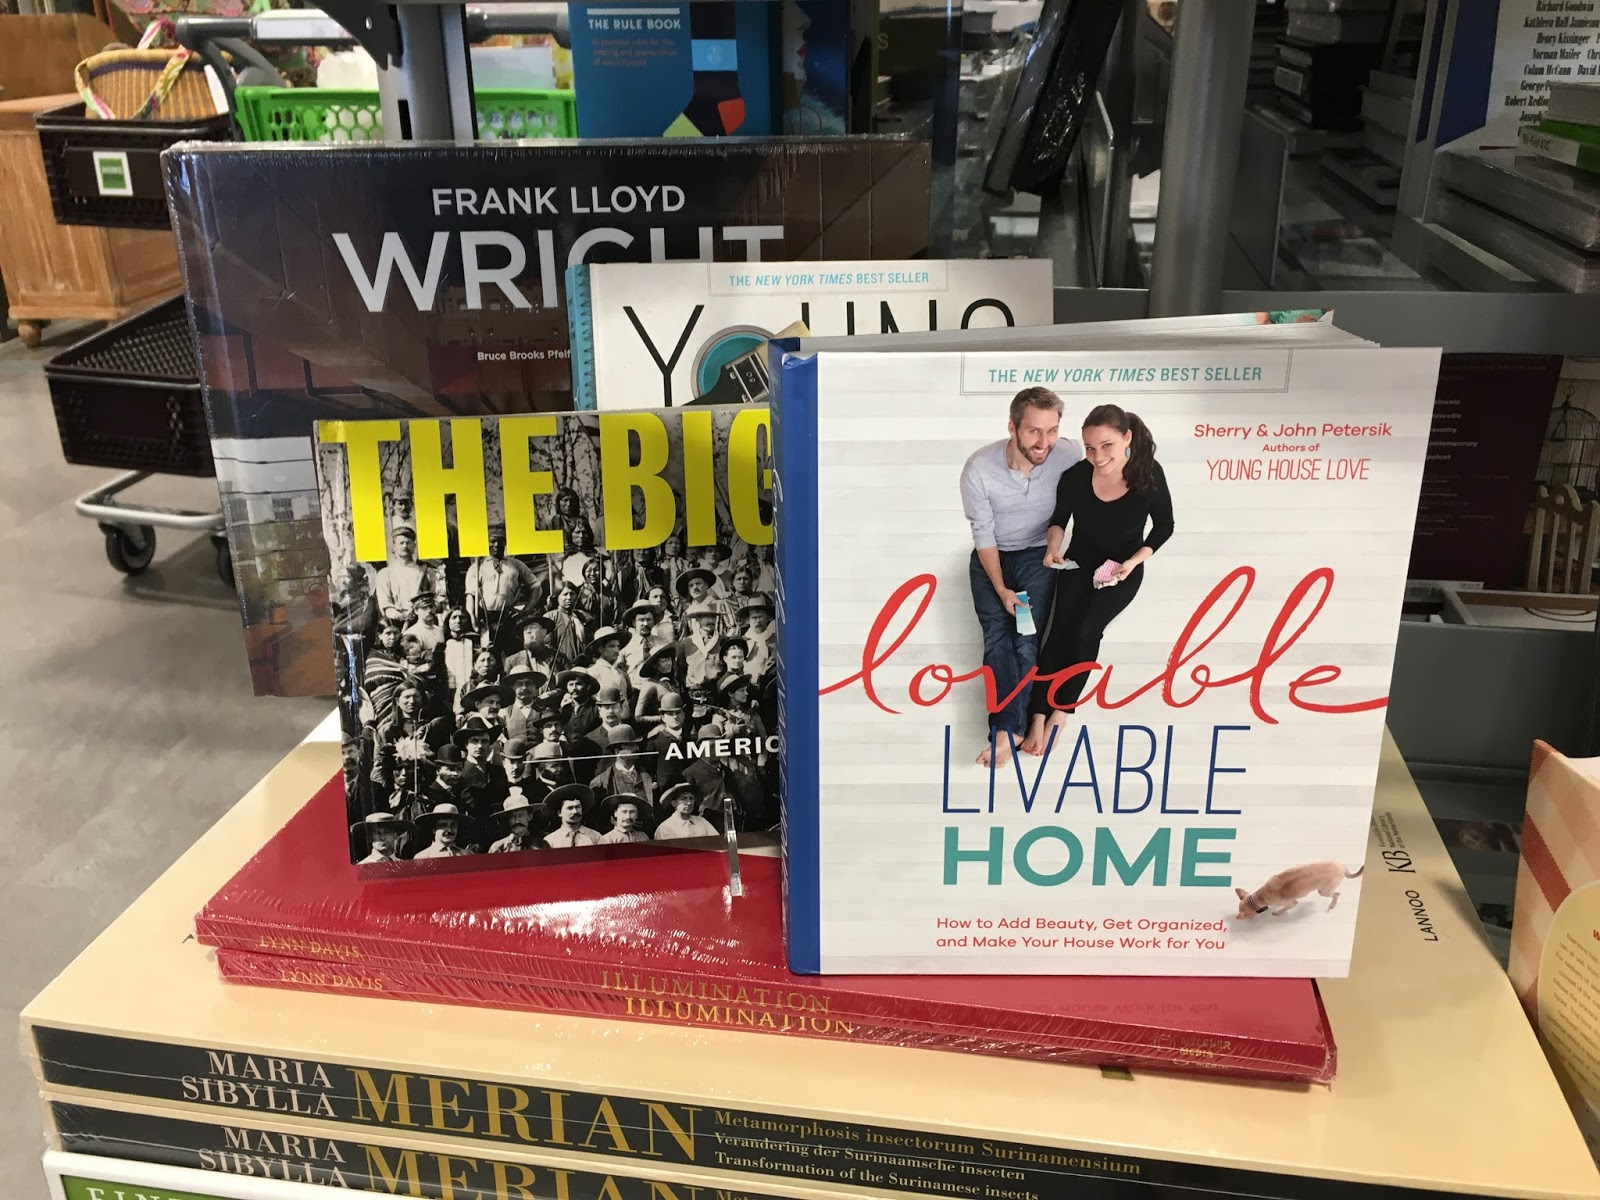 Book section at Homesense